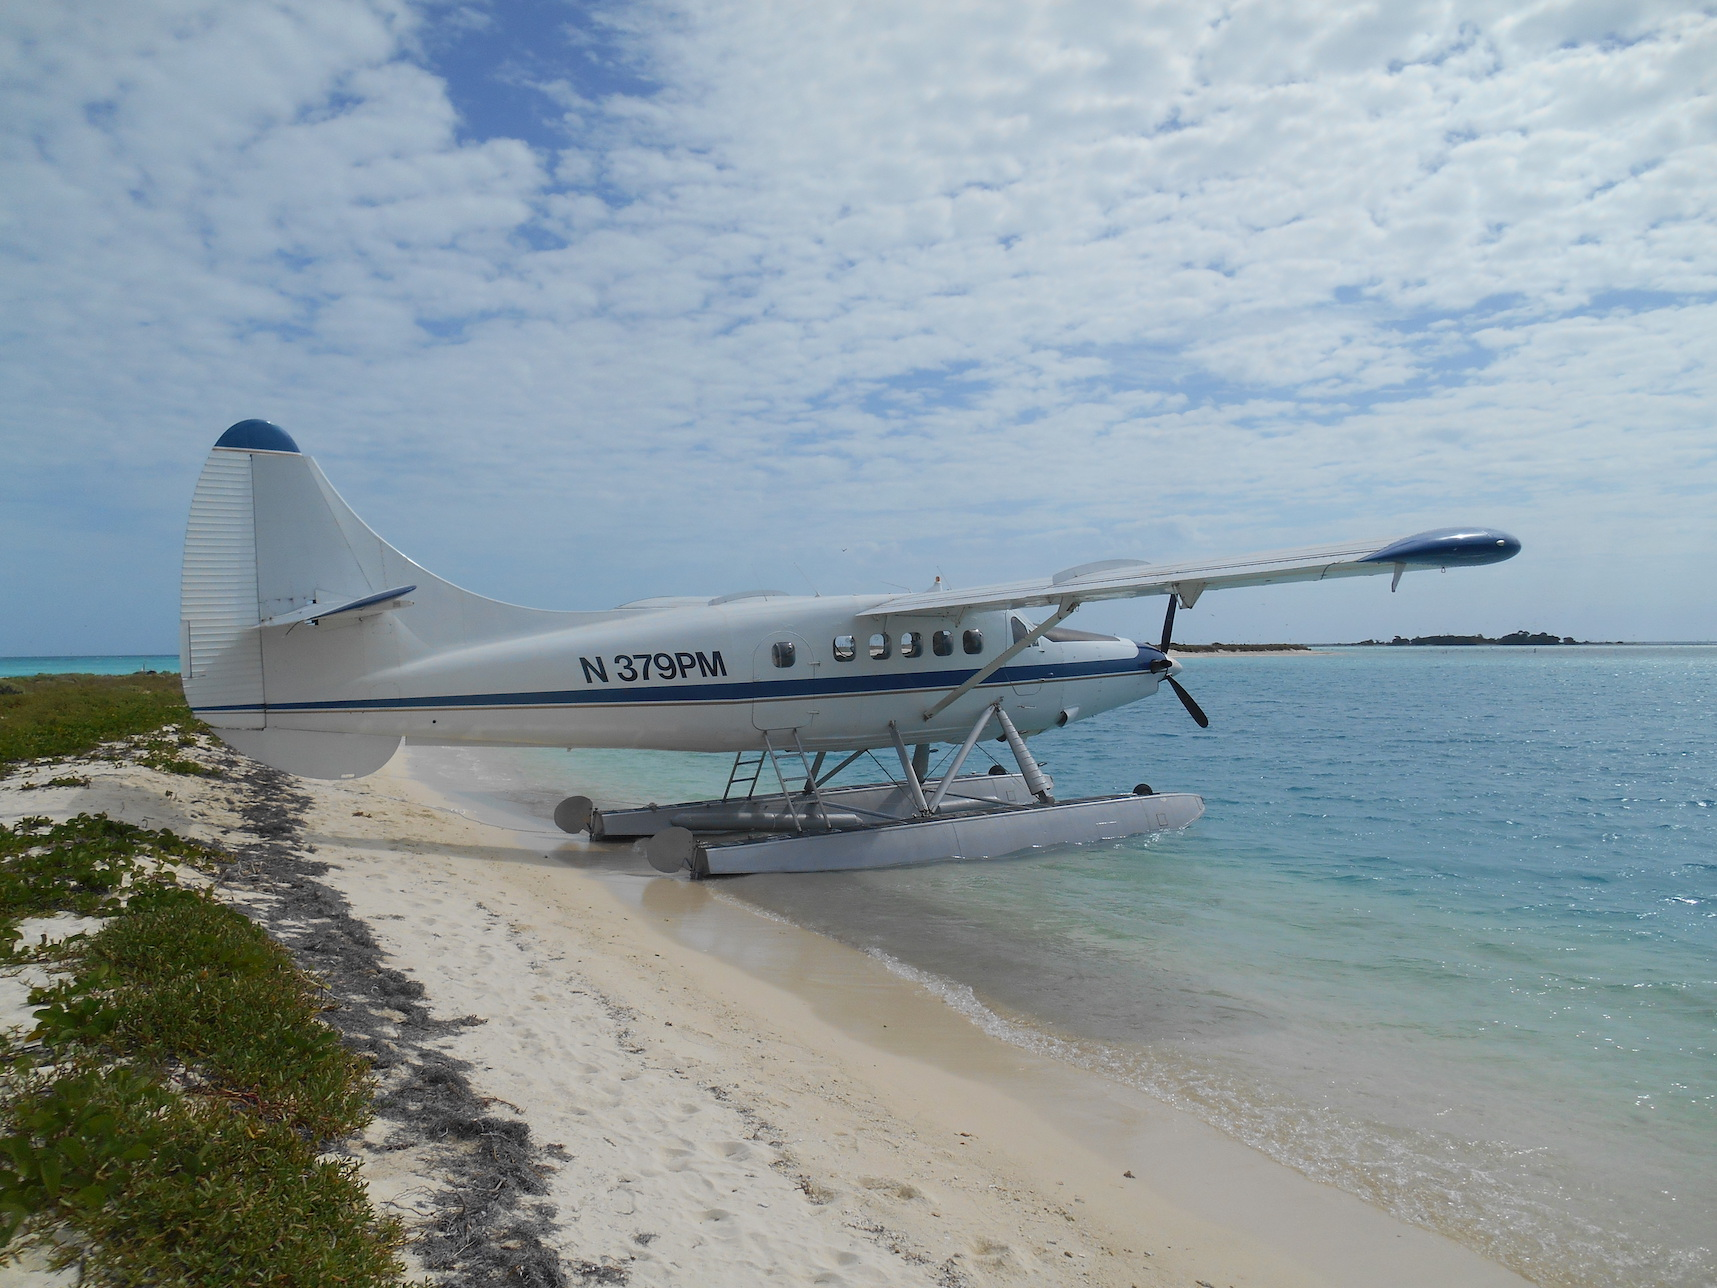 Seaplane at Garden Key, Dry Tortugas National Park